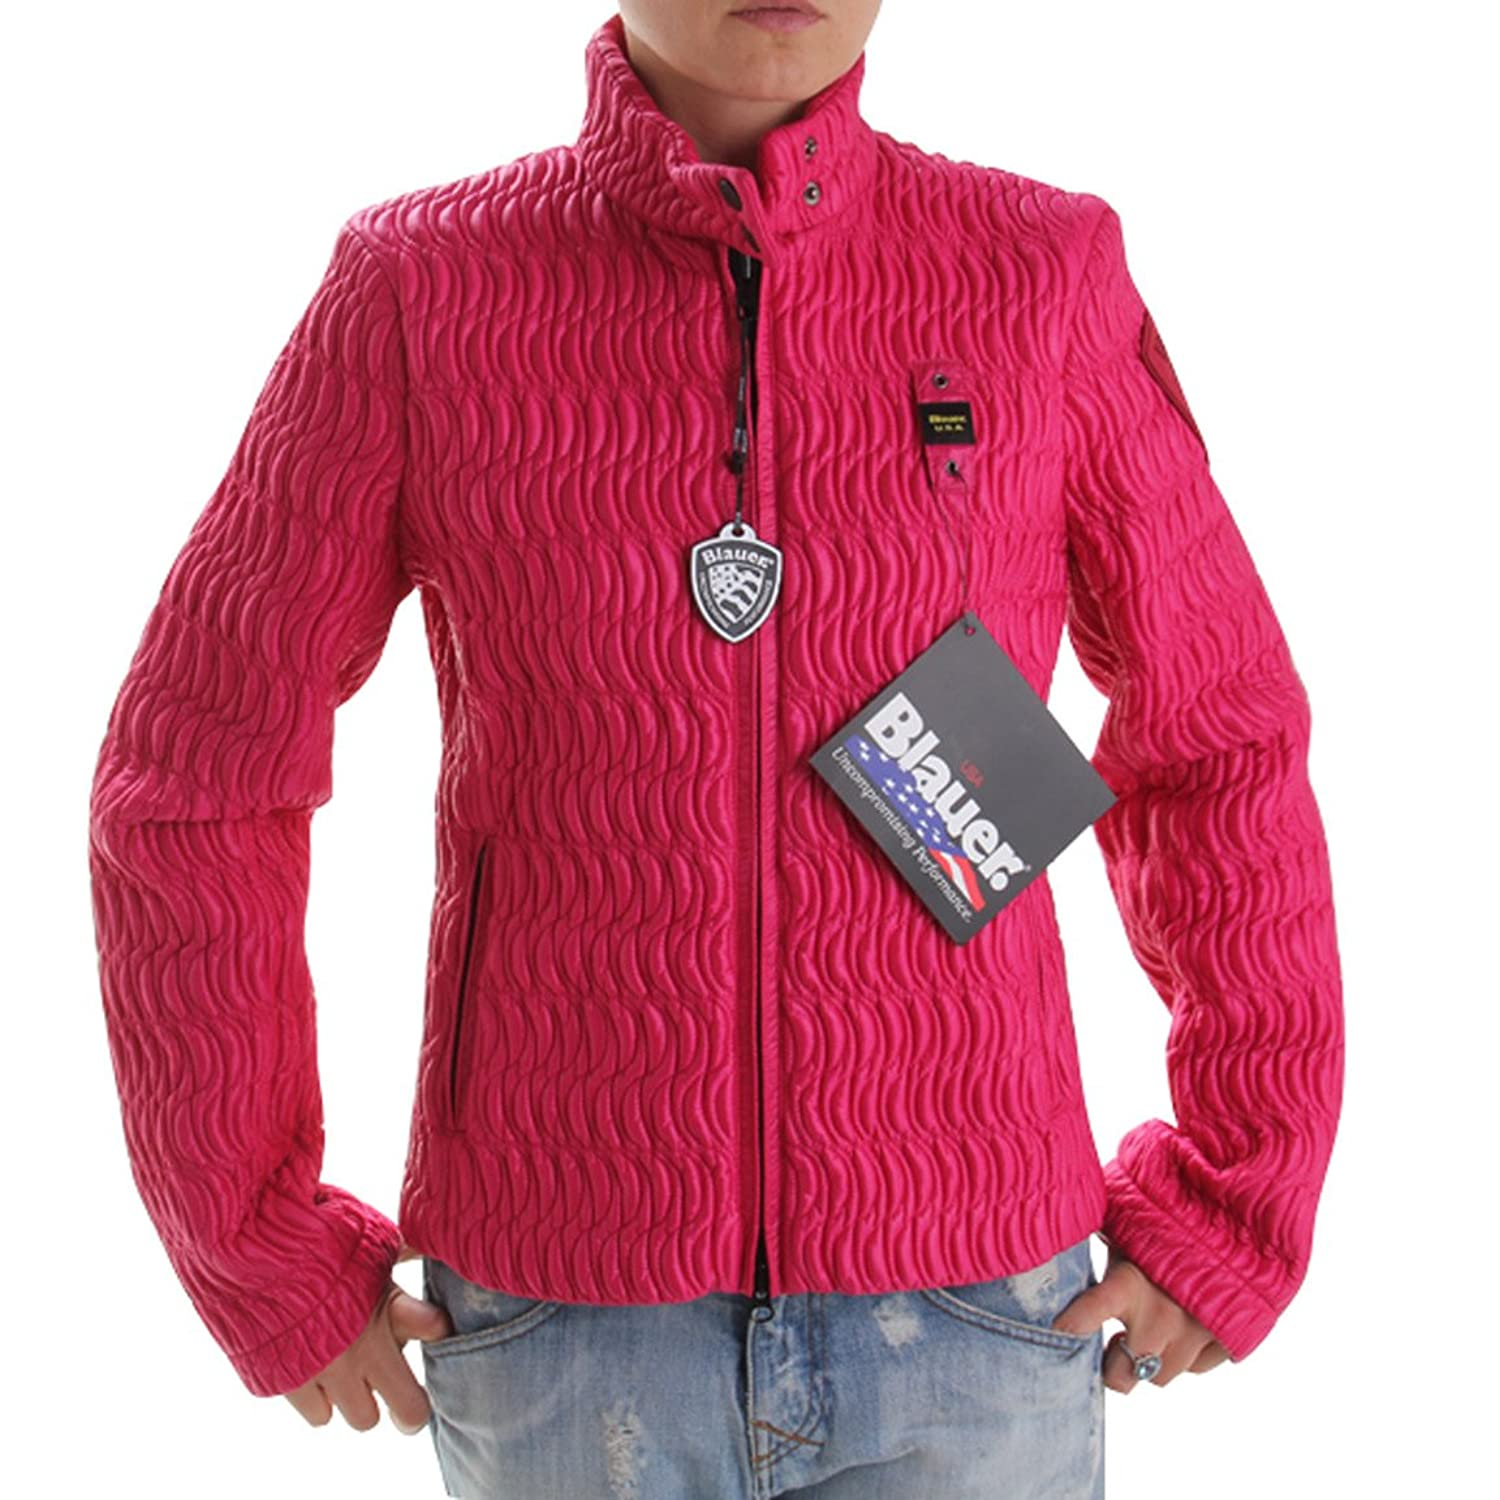 BLAUER USA Damen Fashion Outdoor Jacke Magenta 122